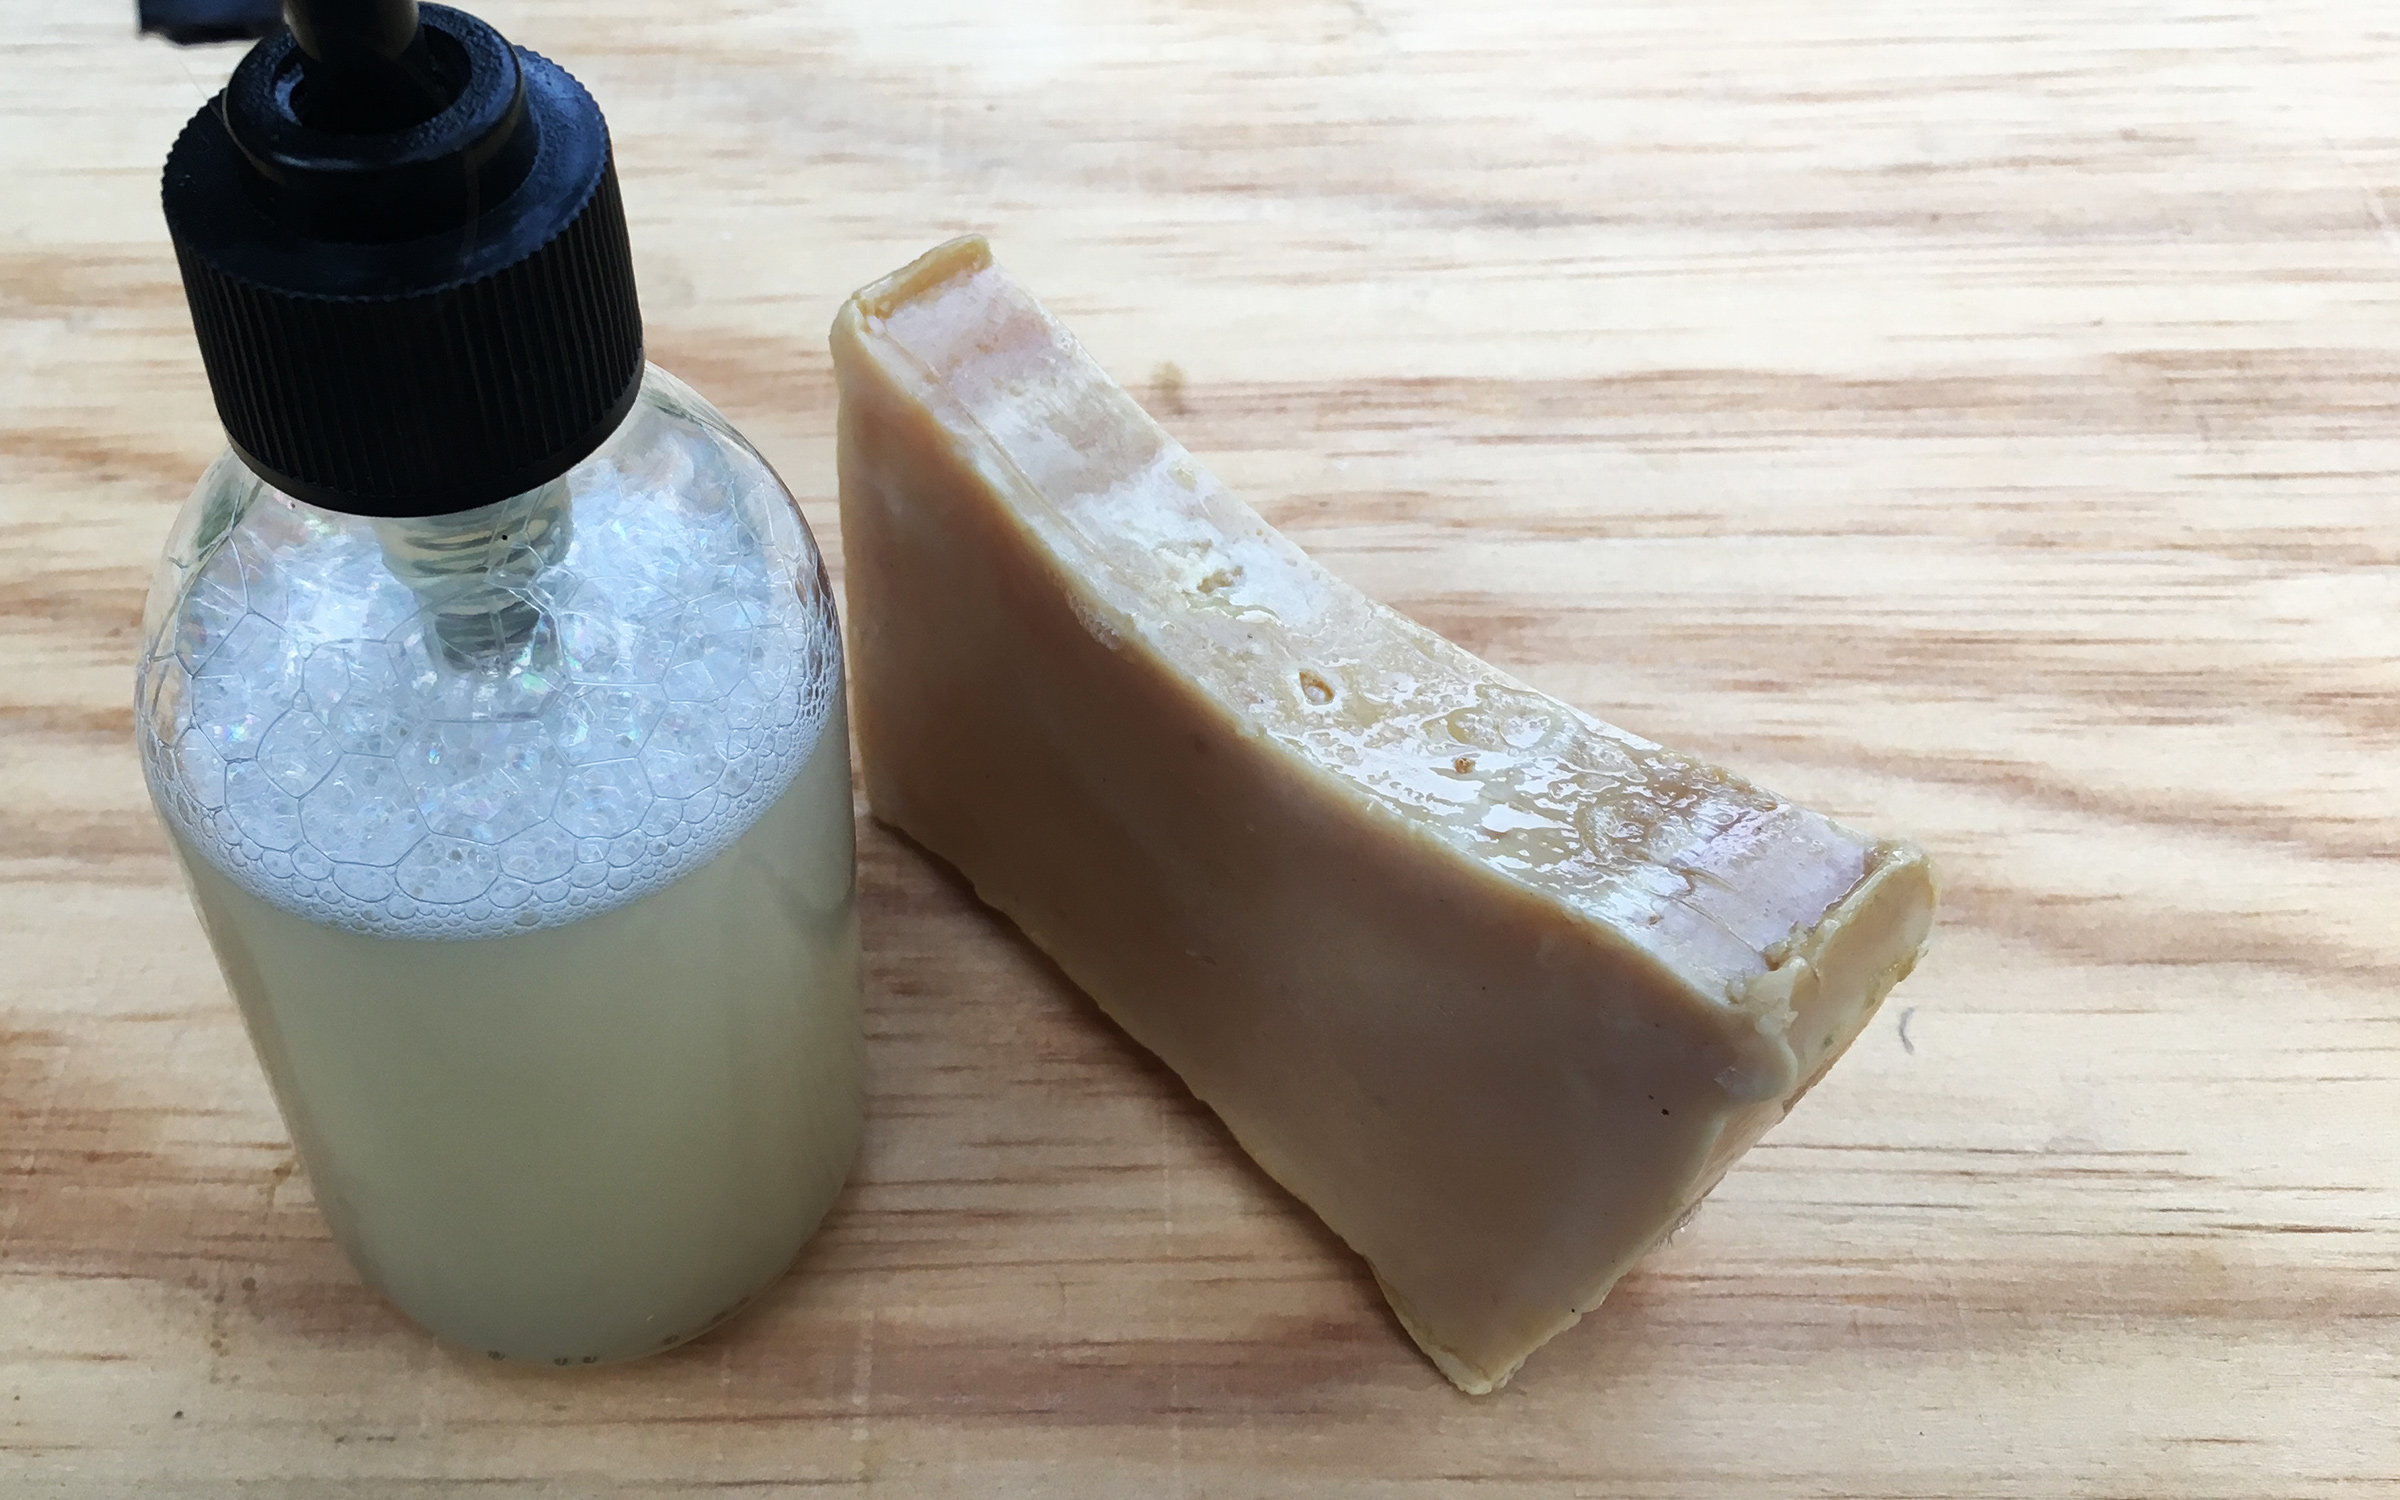 castile soap suppliers south africa – Natural Nerd